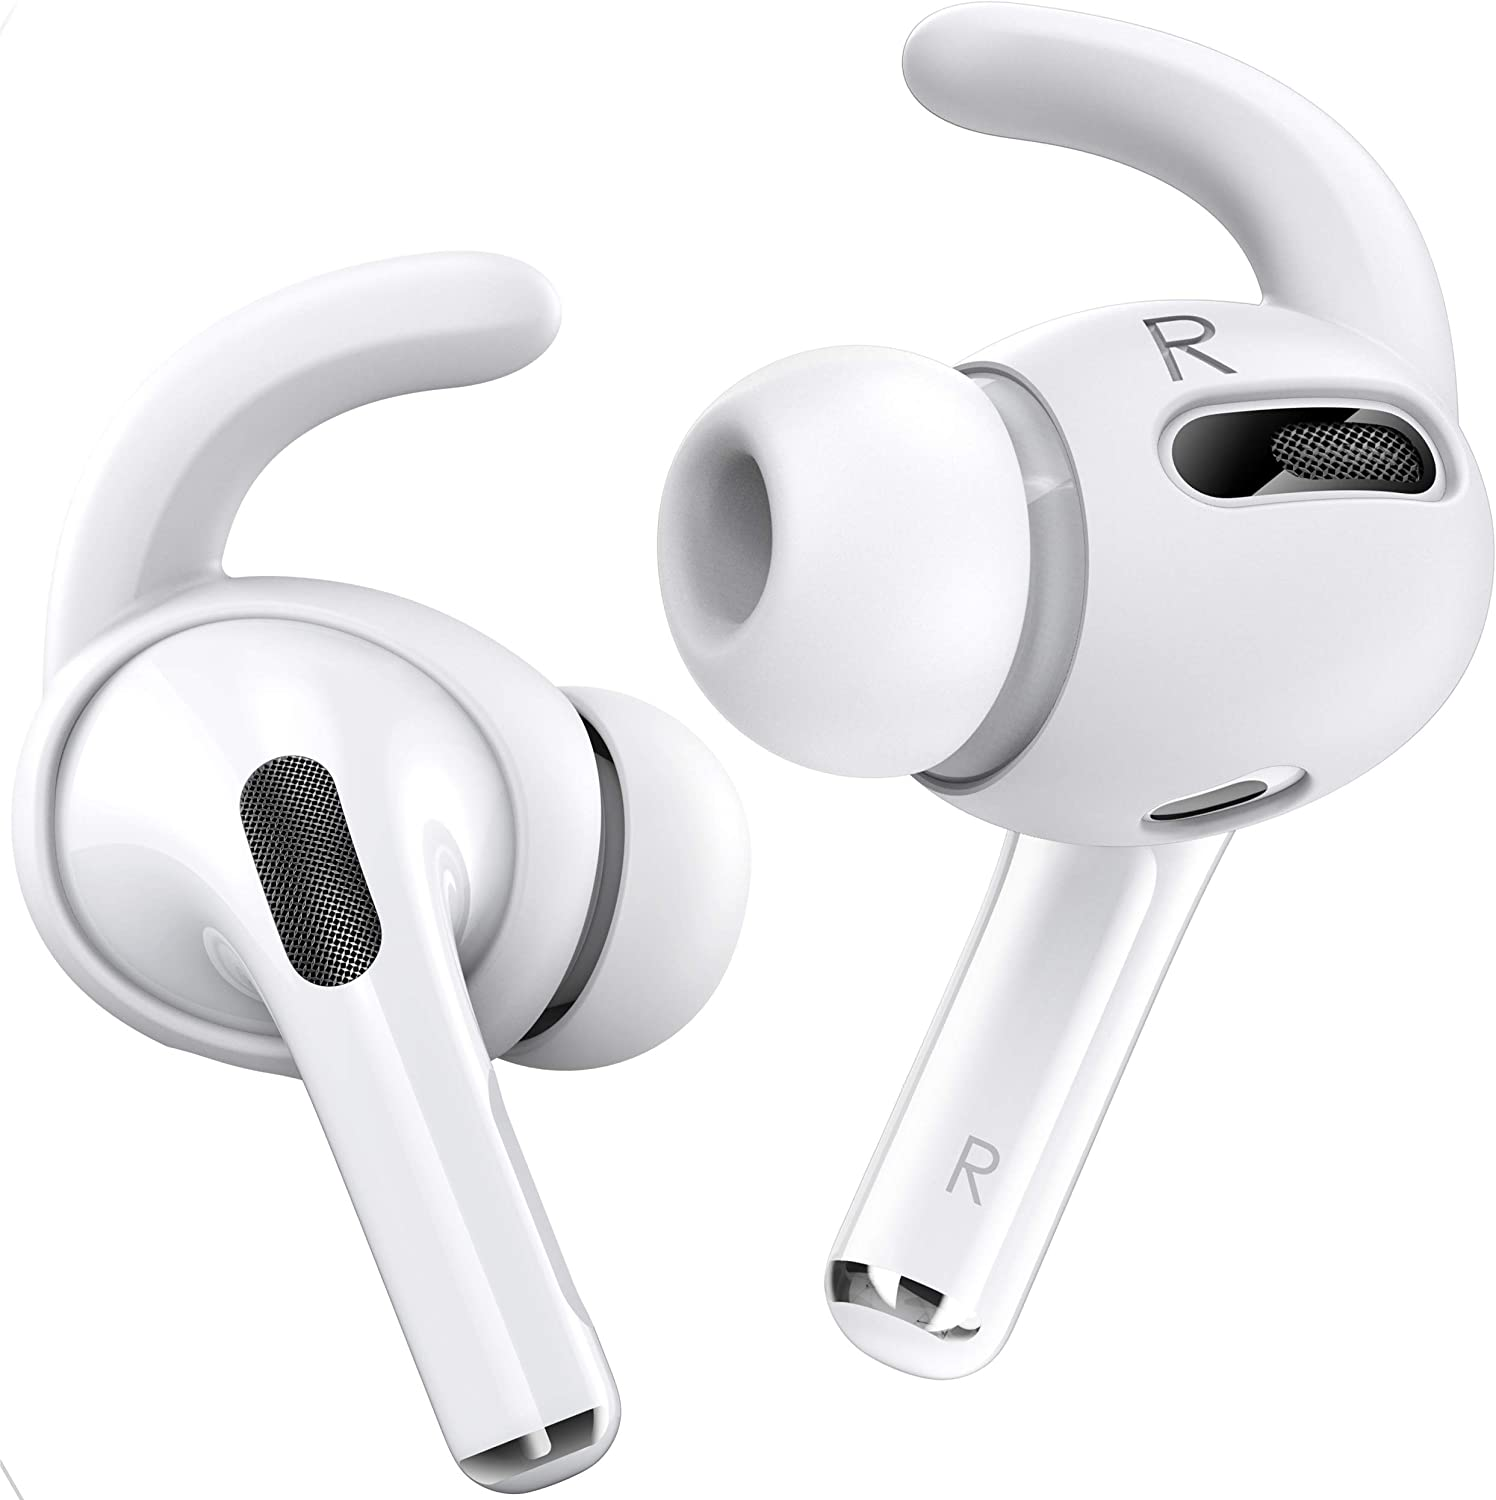 Proof Labs 3 Pairs AirPods Pro Ear Hooks Covers [Added Storage Pouch] Compatible with Apple AirPods Pro (White)